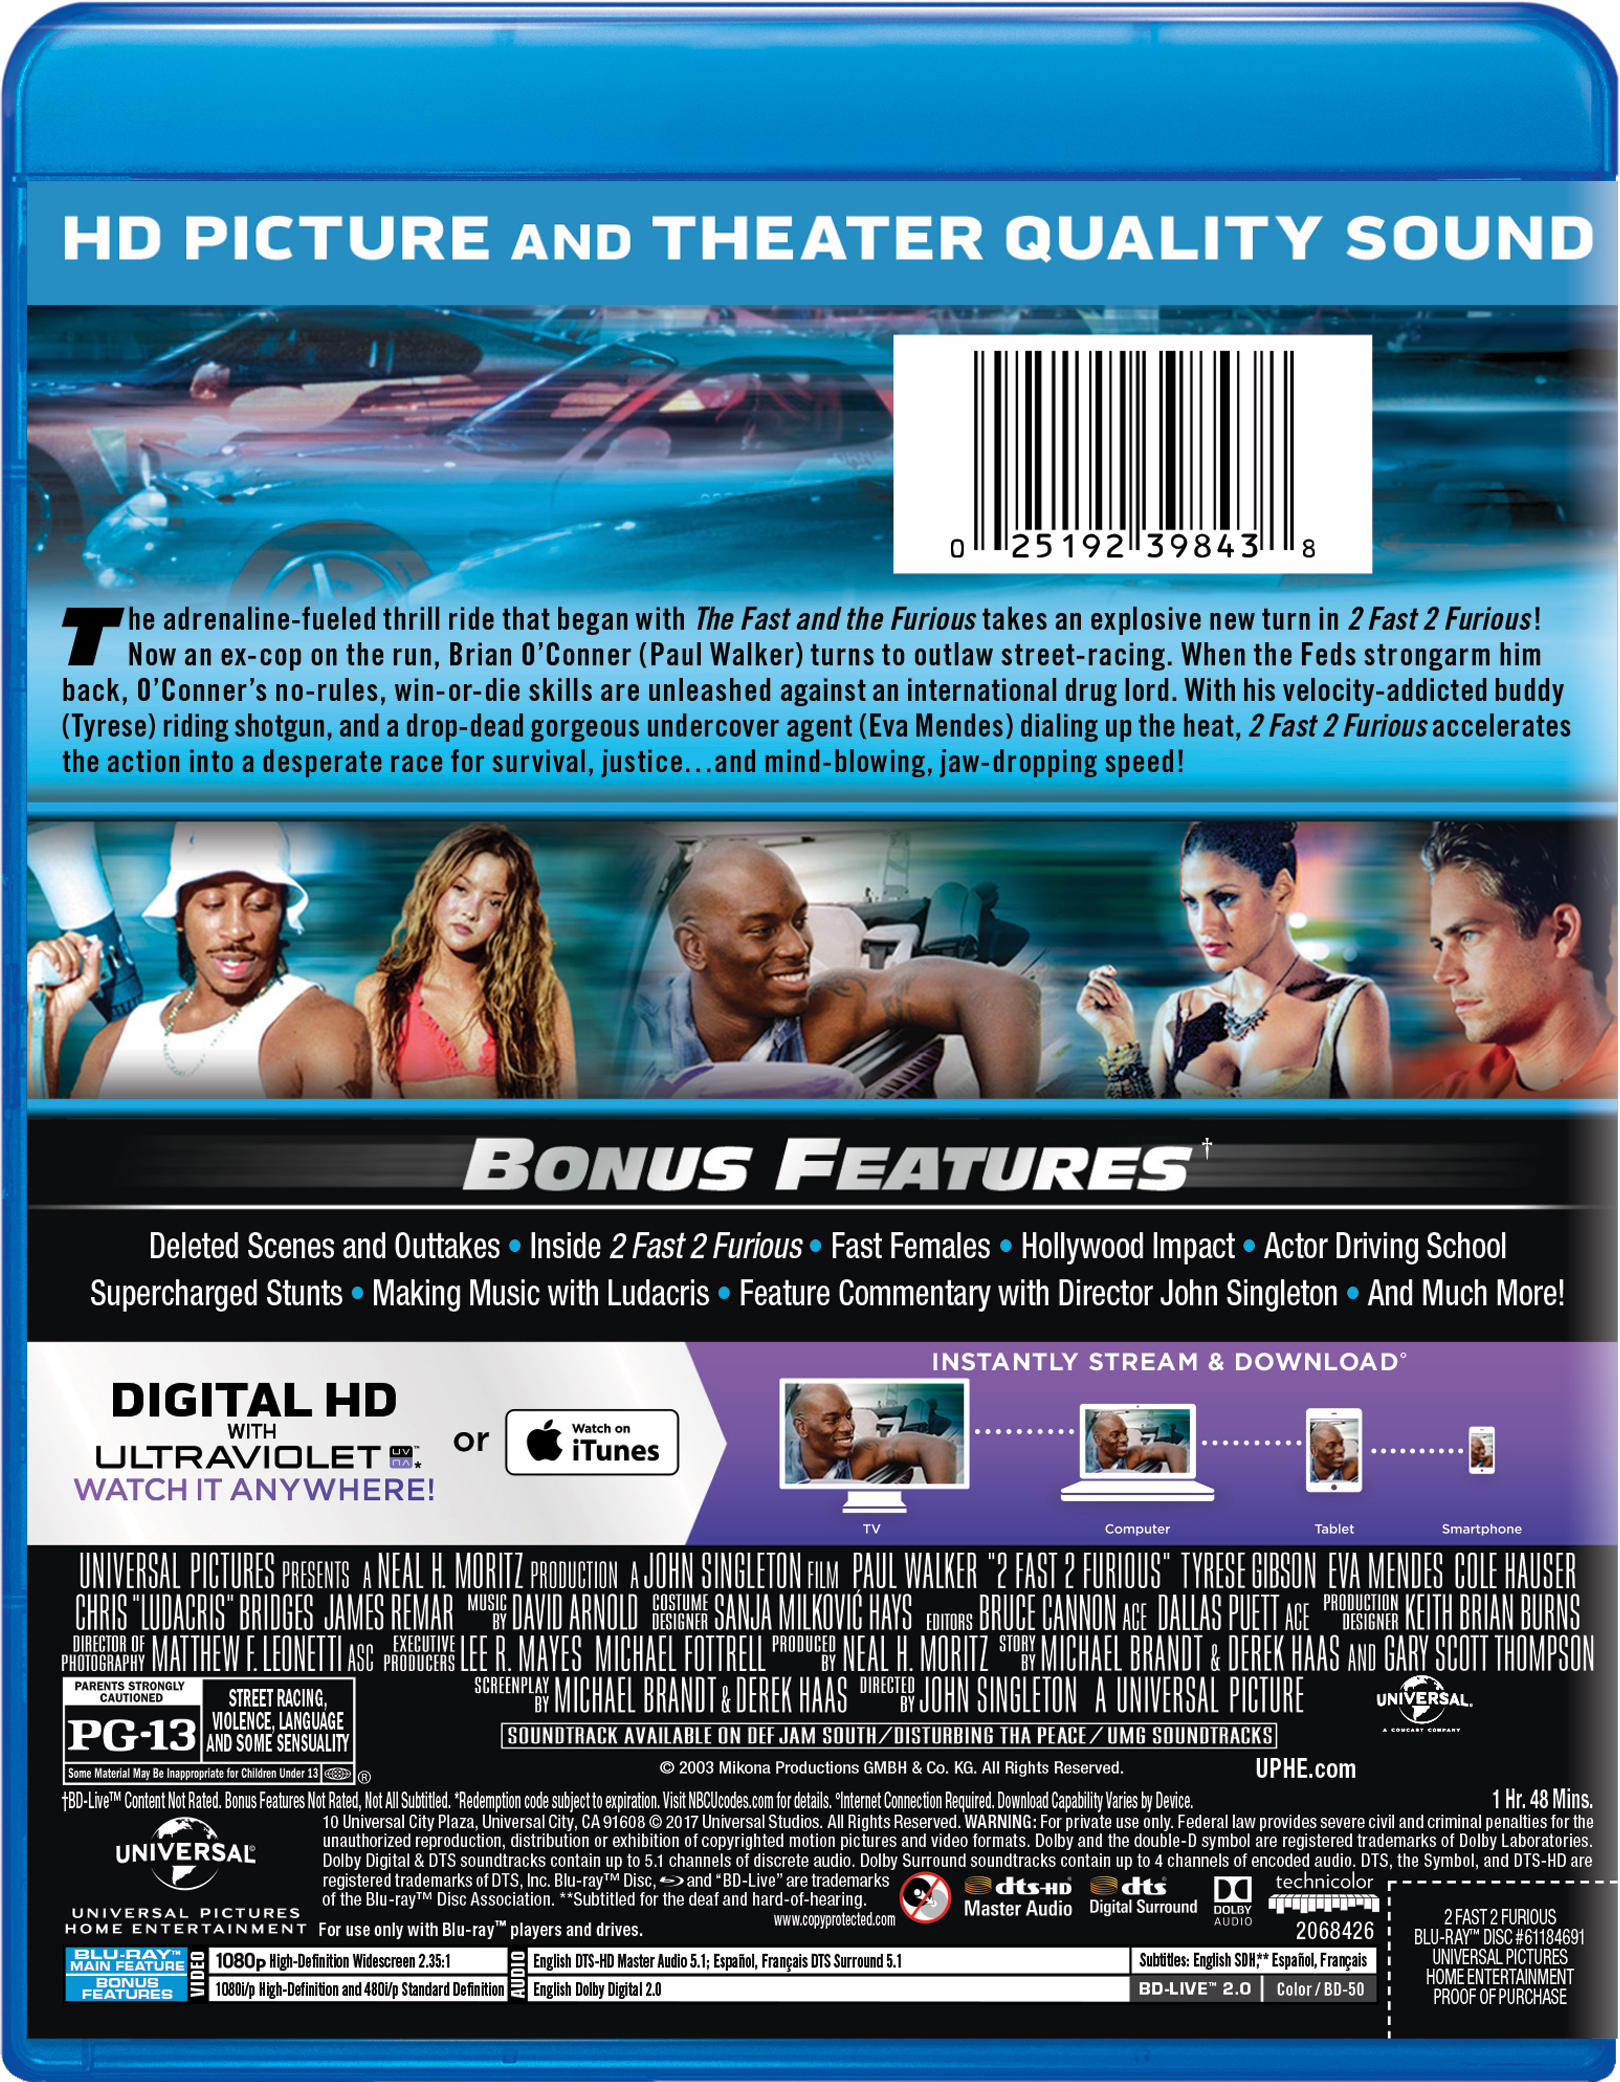 2 Fast 2 Furious | Movie Page | DVD, Blu-ray, Digital HD, On Demand